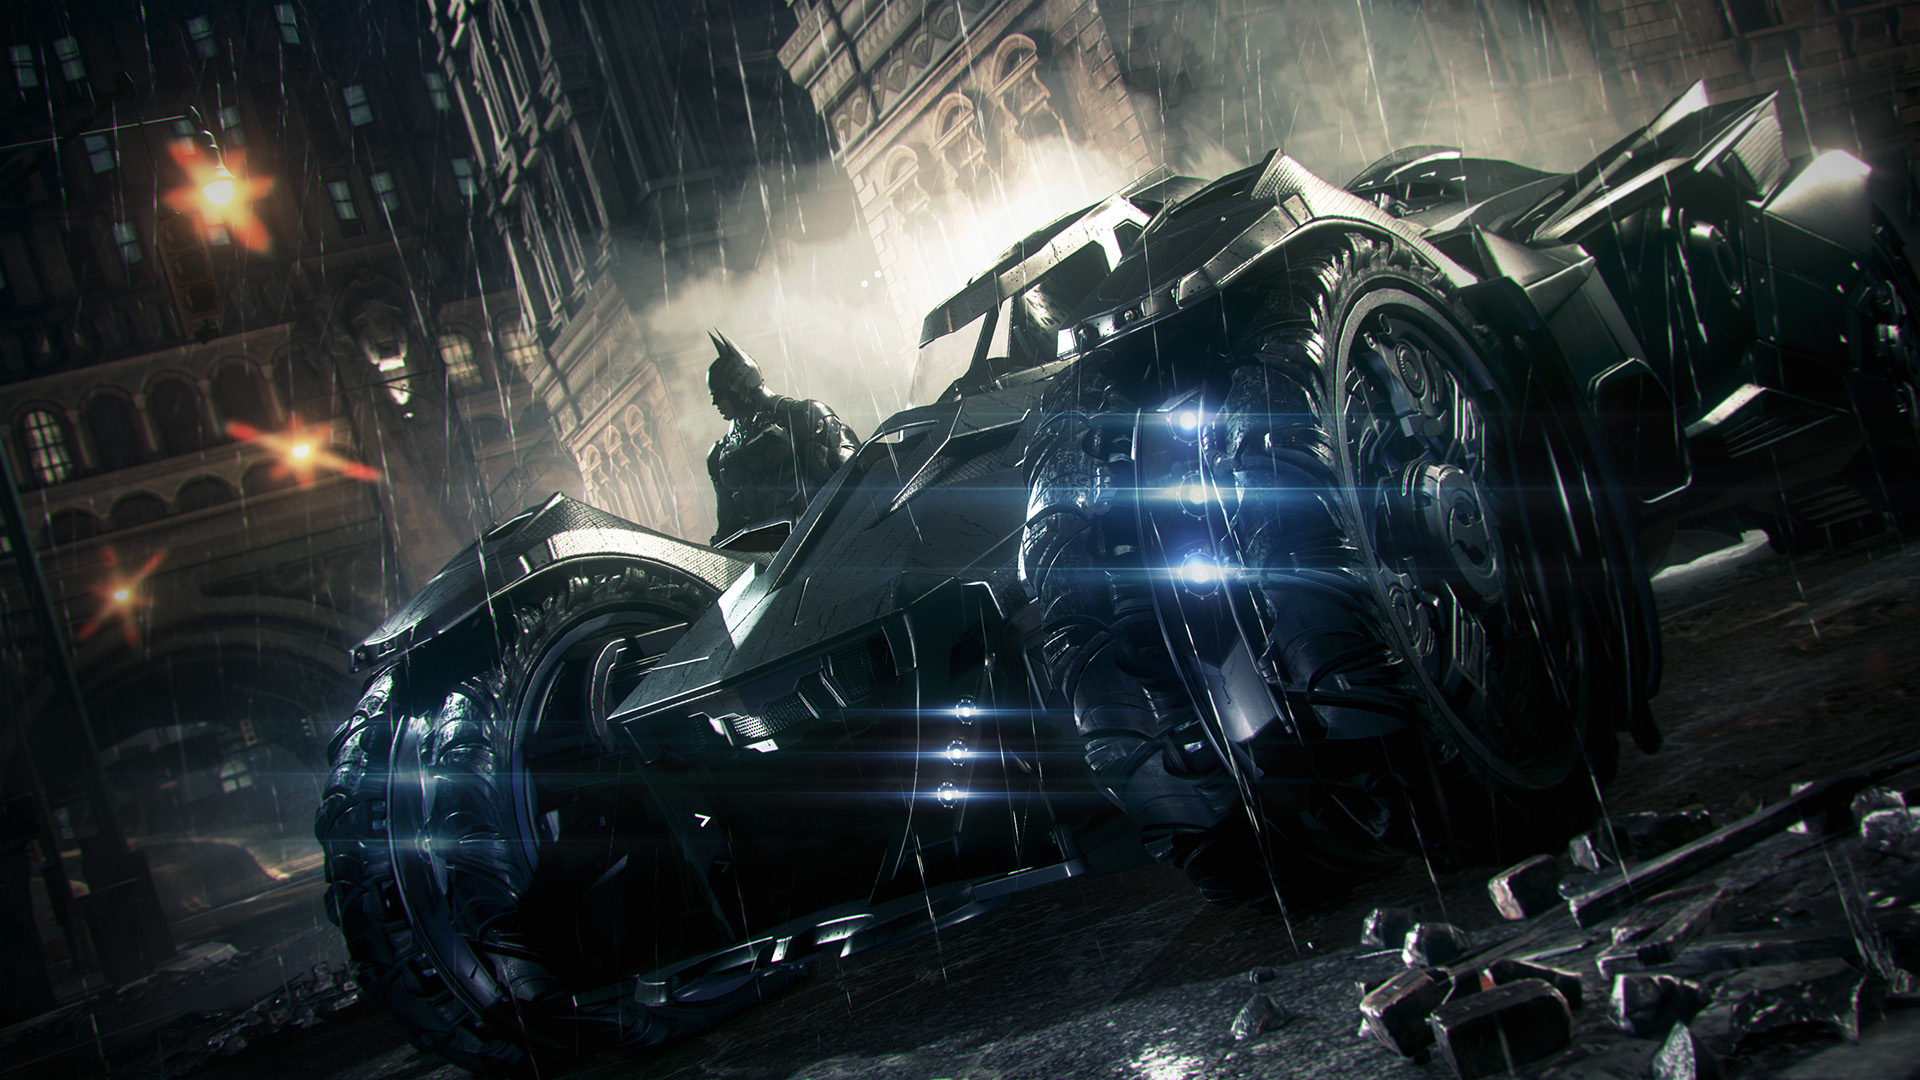 Here's your first look at the Batmobile in Batman: Arkham Knight